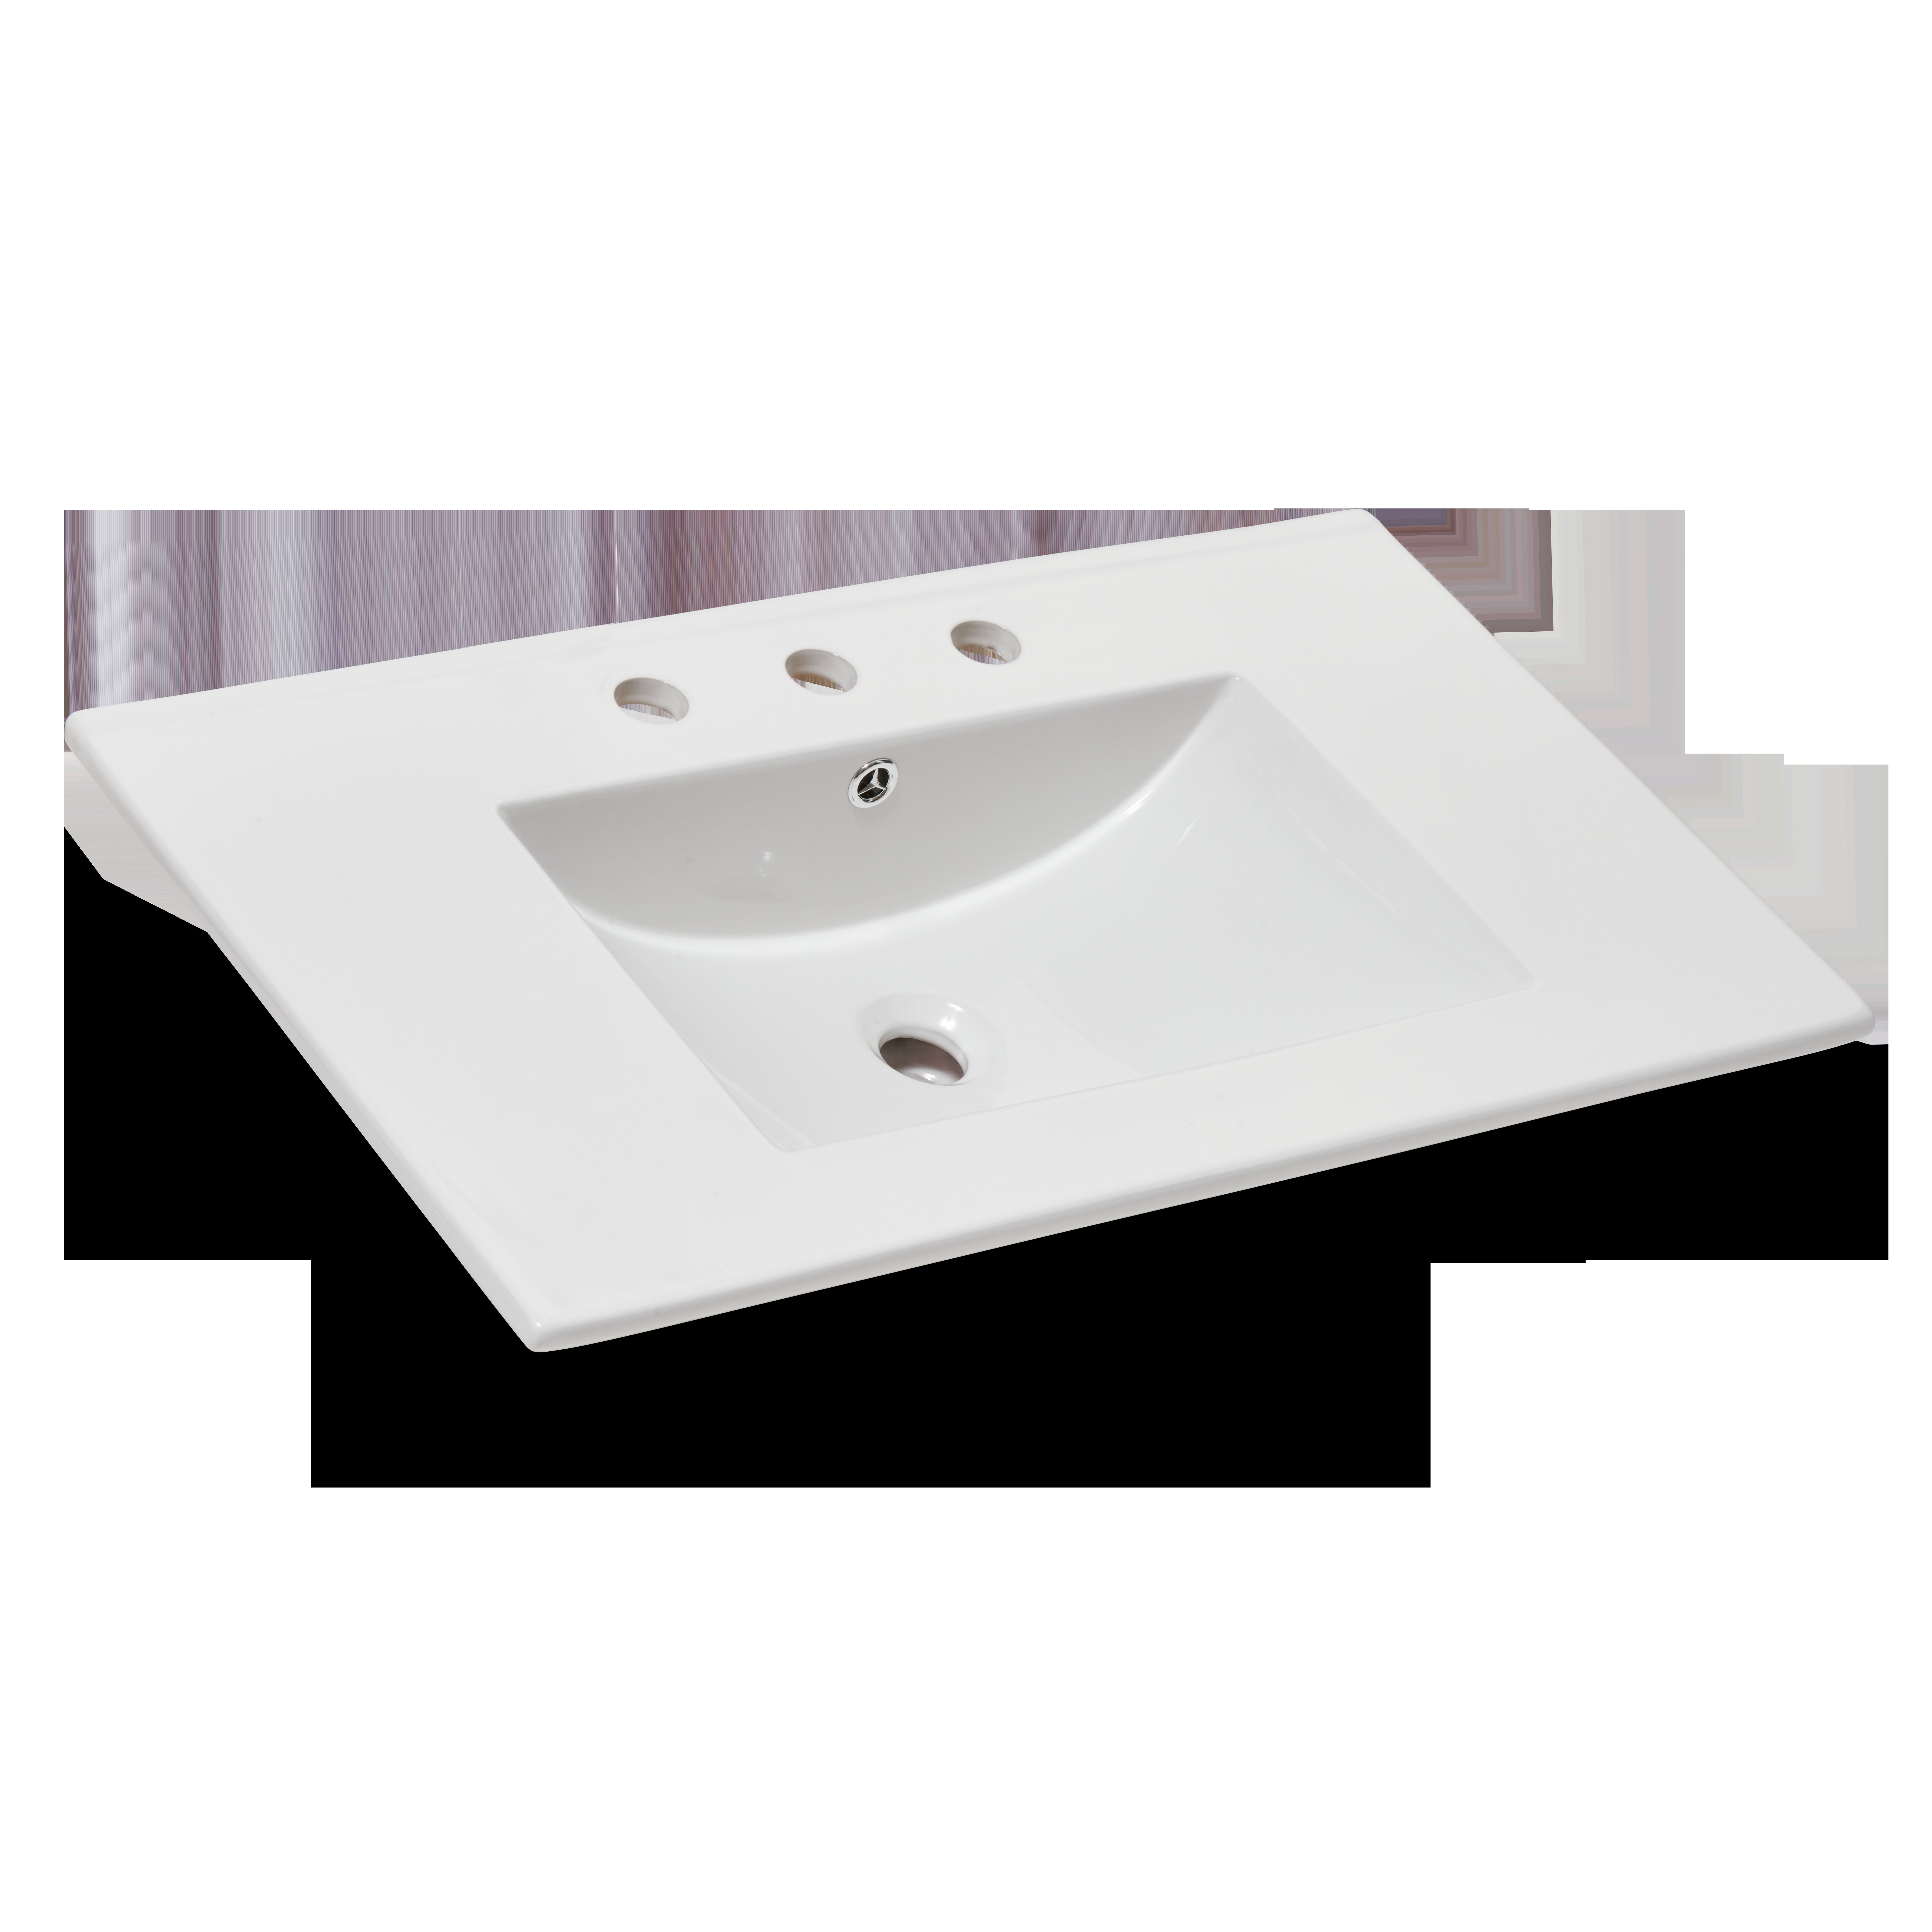 24 Inches Vanity Tops Free Shipping Over 35 Wayfair